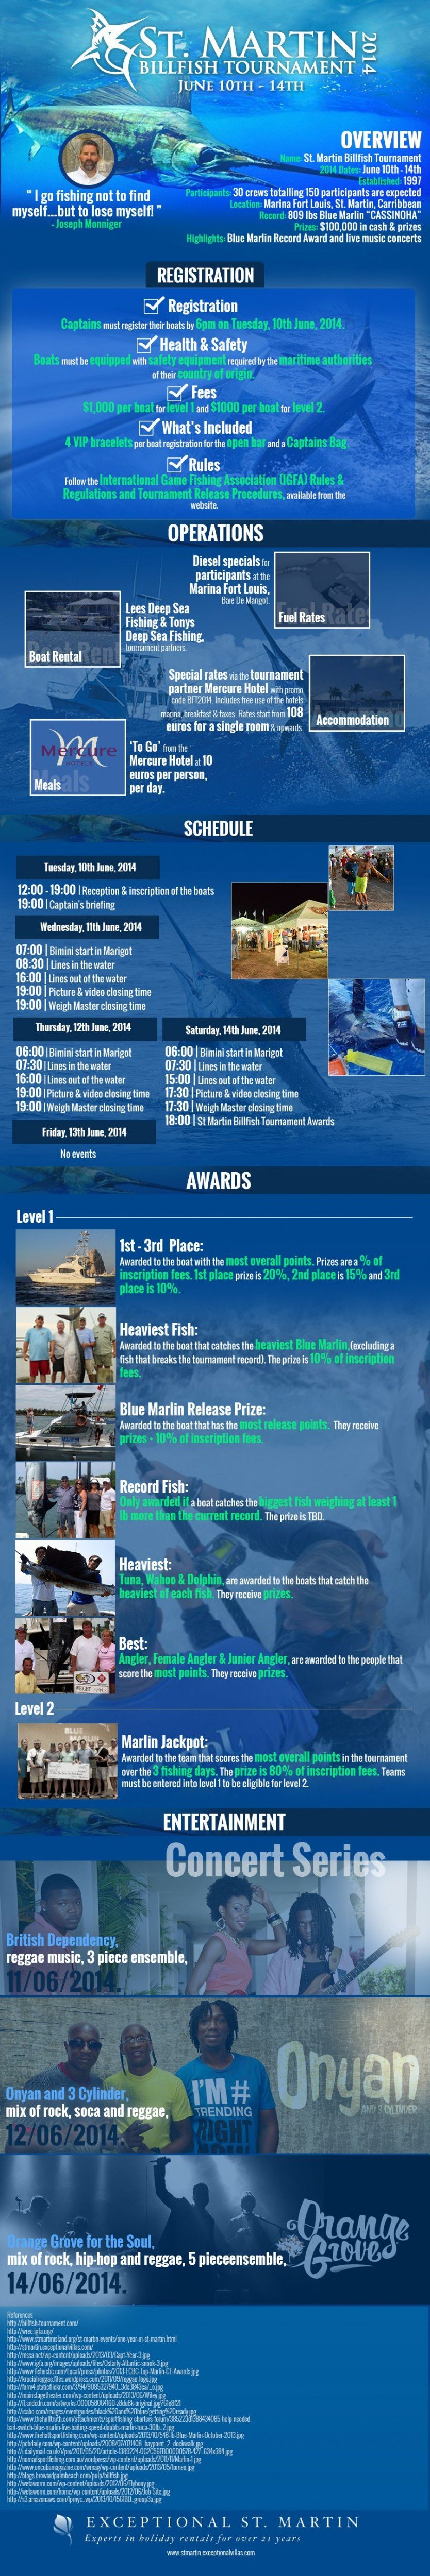 The St. Martin Billfish Tournament 2014 - An Infographic